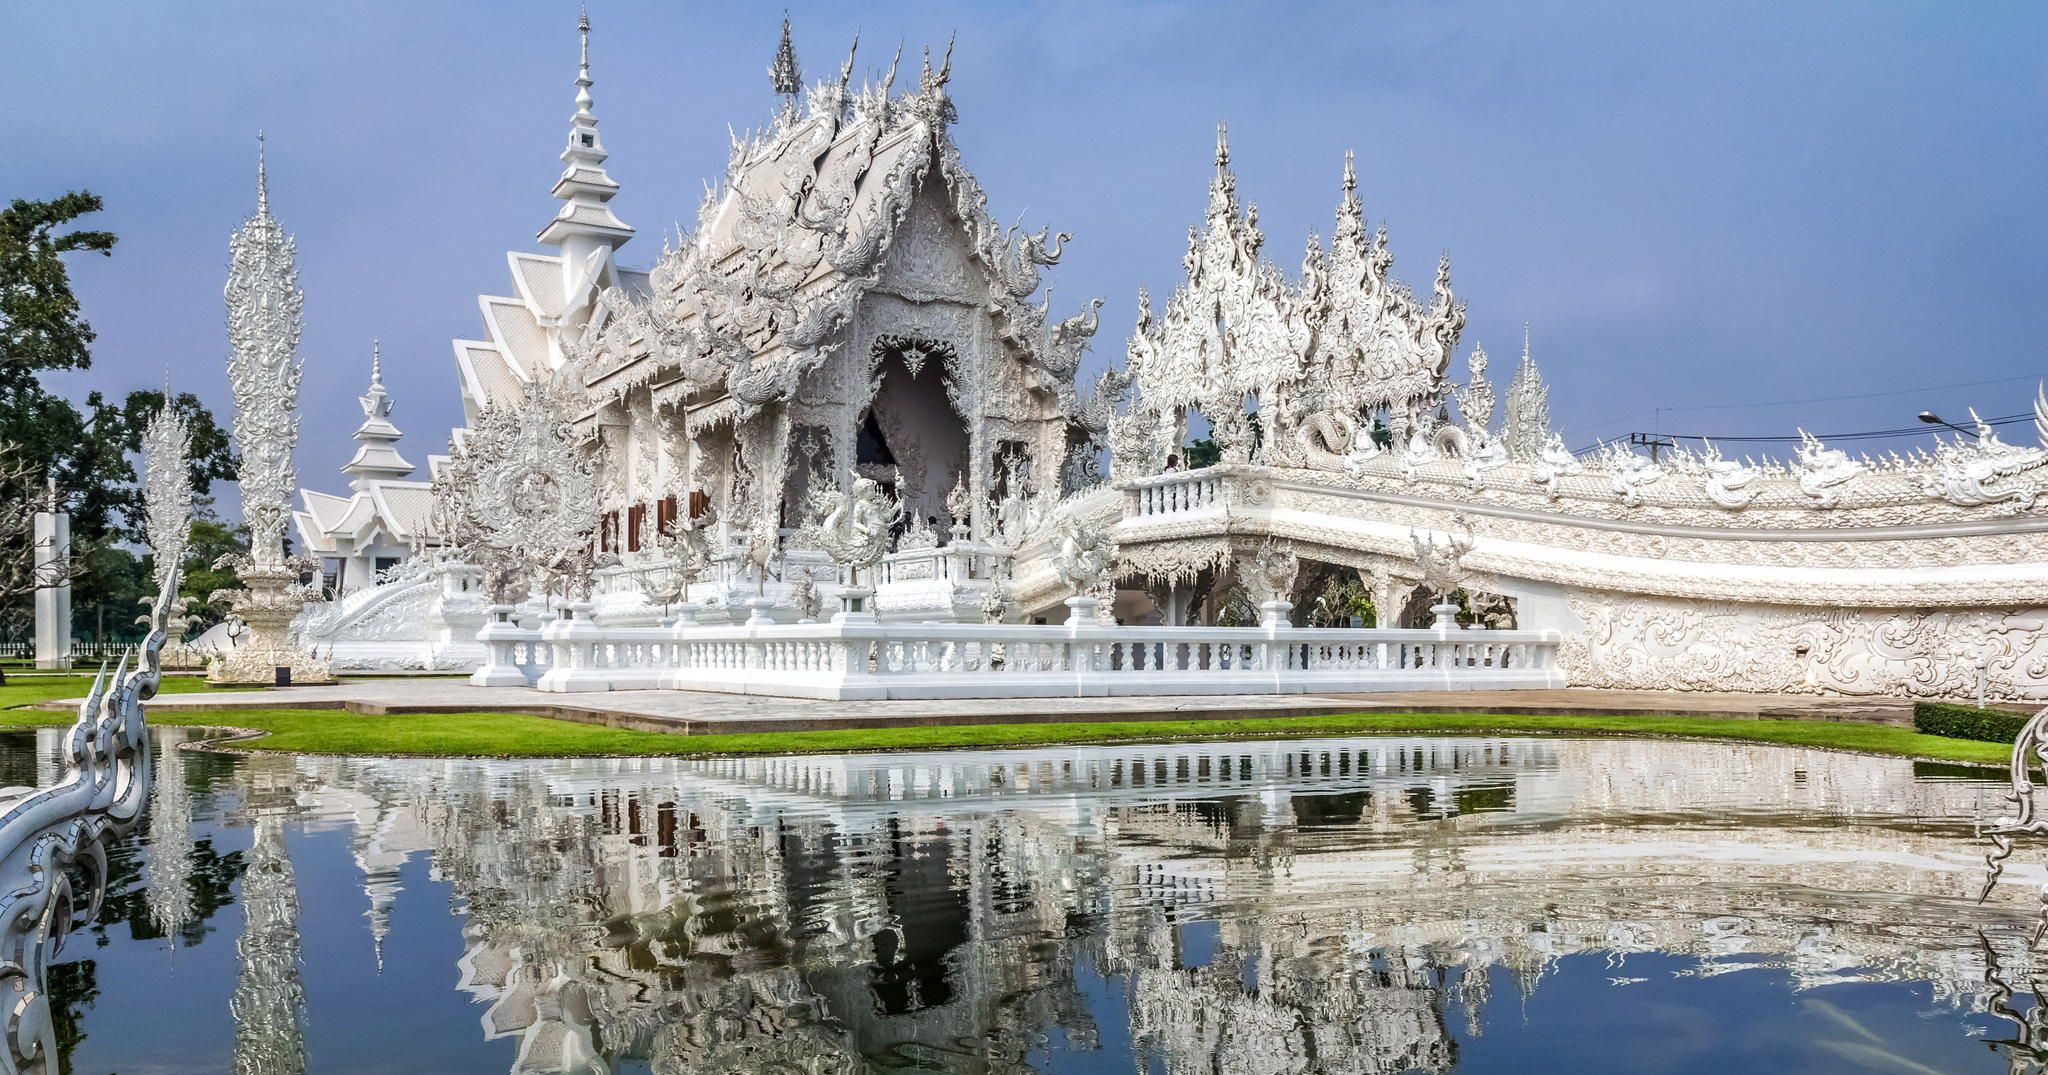 Thailand's White Temple Looks Like It Came Down From Heaven | White temple  thailand, White temple, Cool places to visit